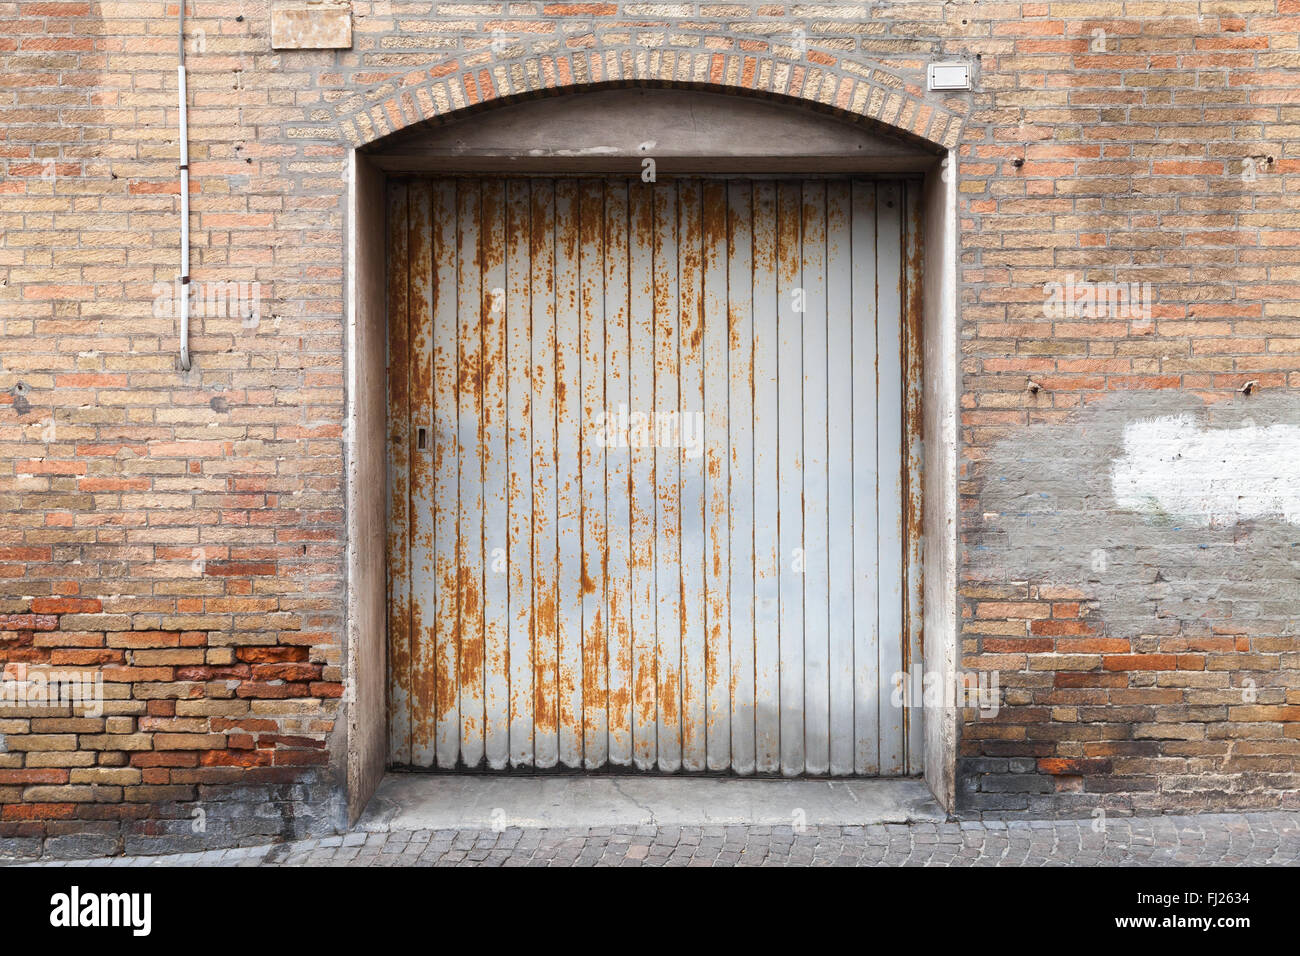 Rusted grungy metal gate in old brick wall background